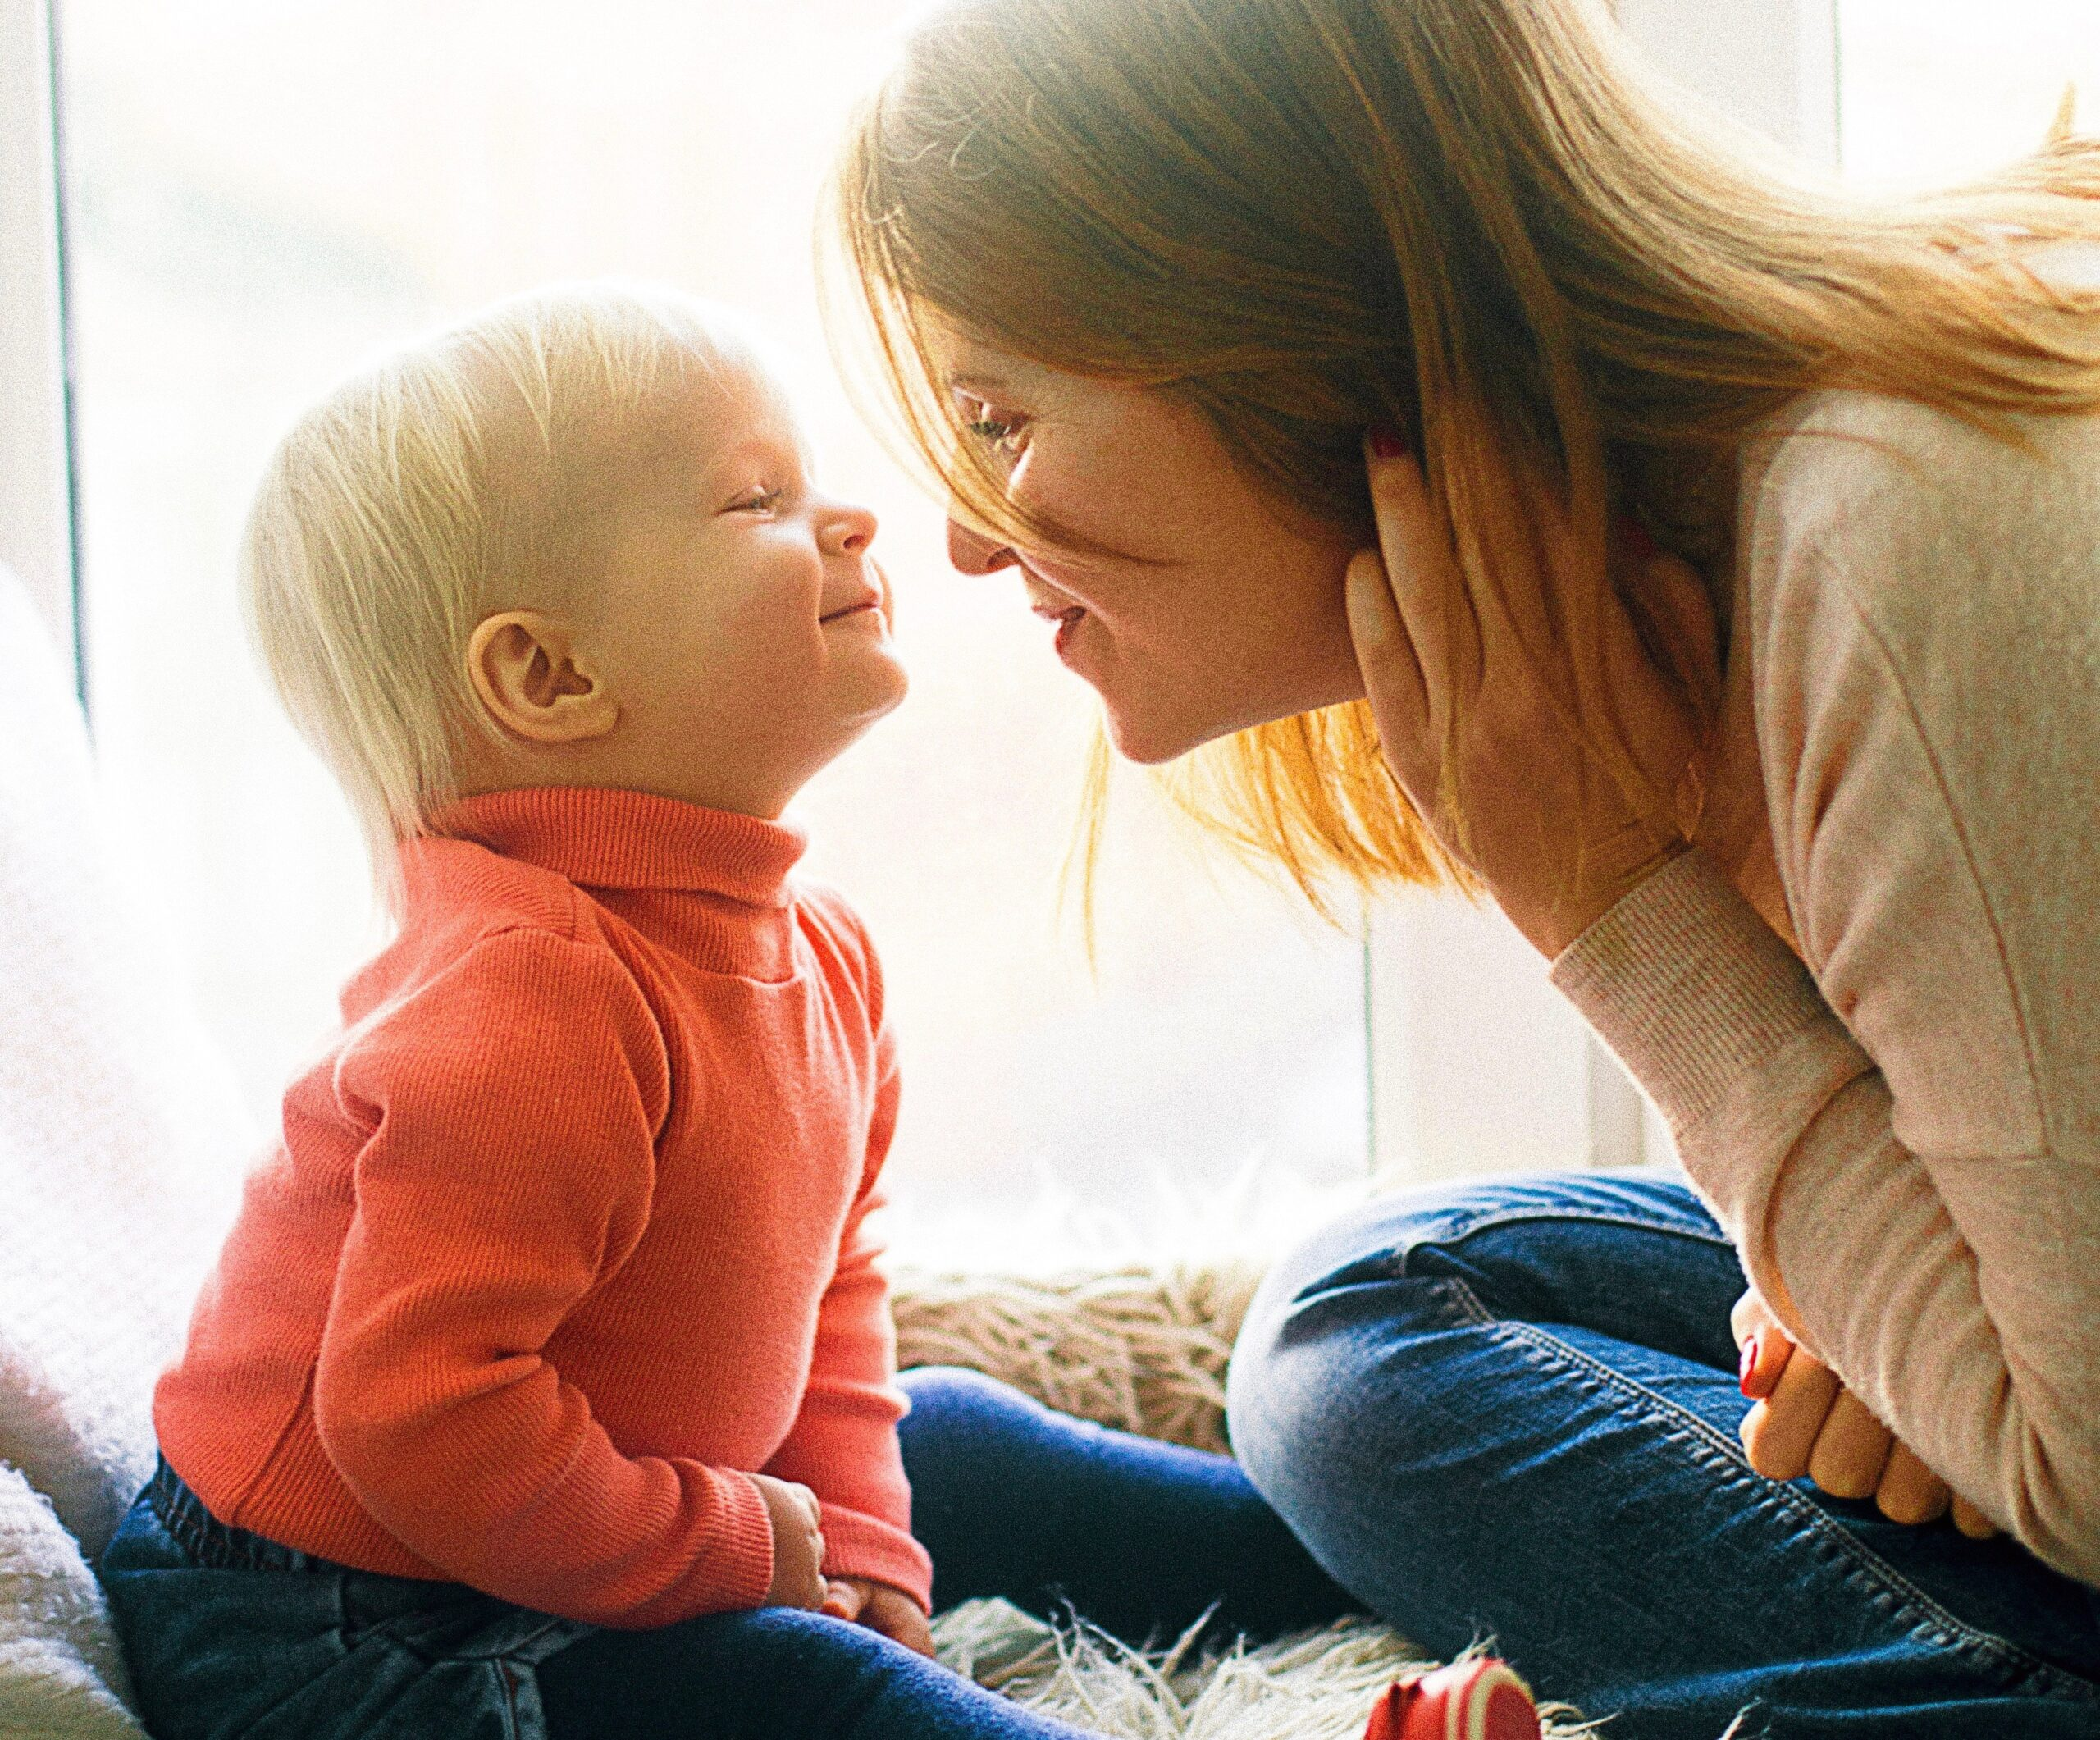 woman and child sitting on fur covered bed in front of window nose to nose with smiles